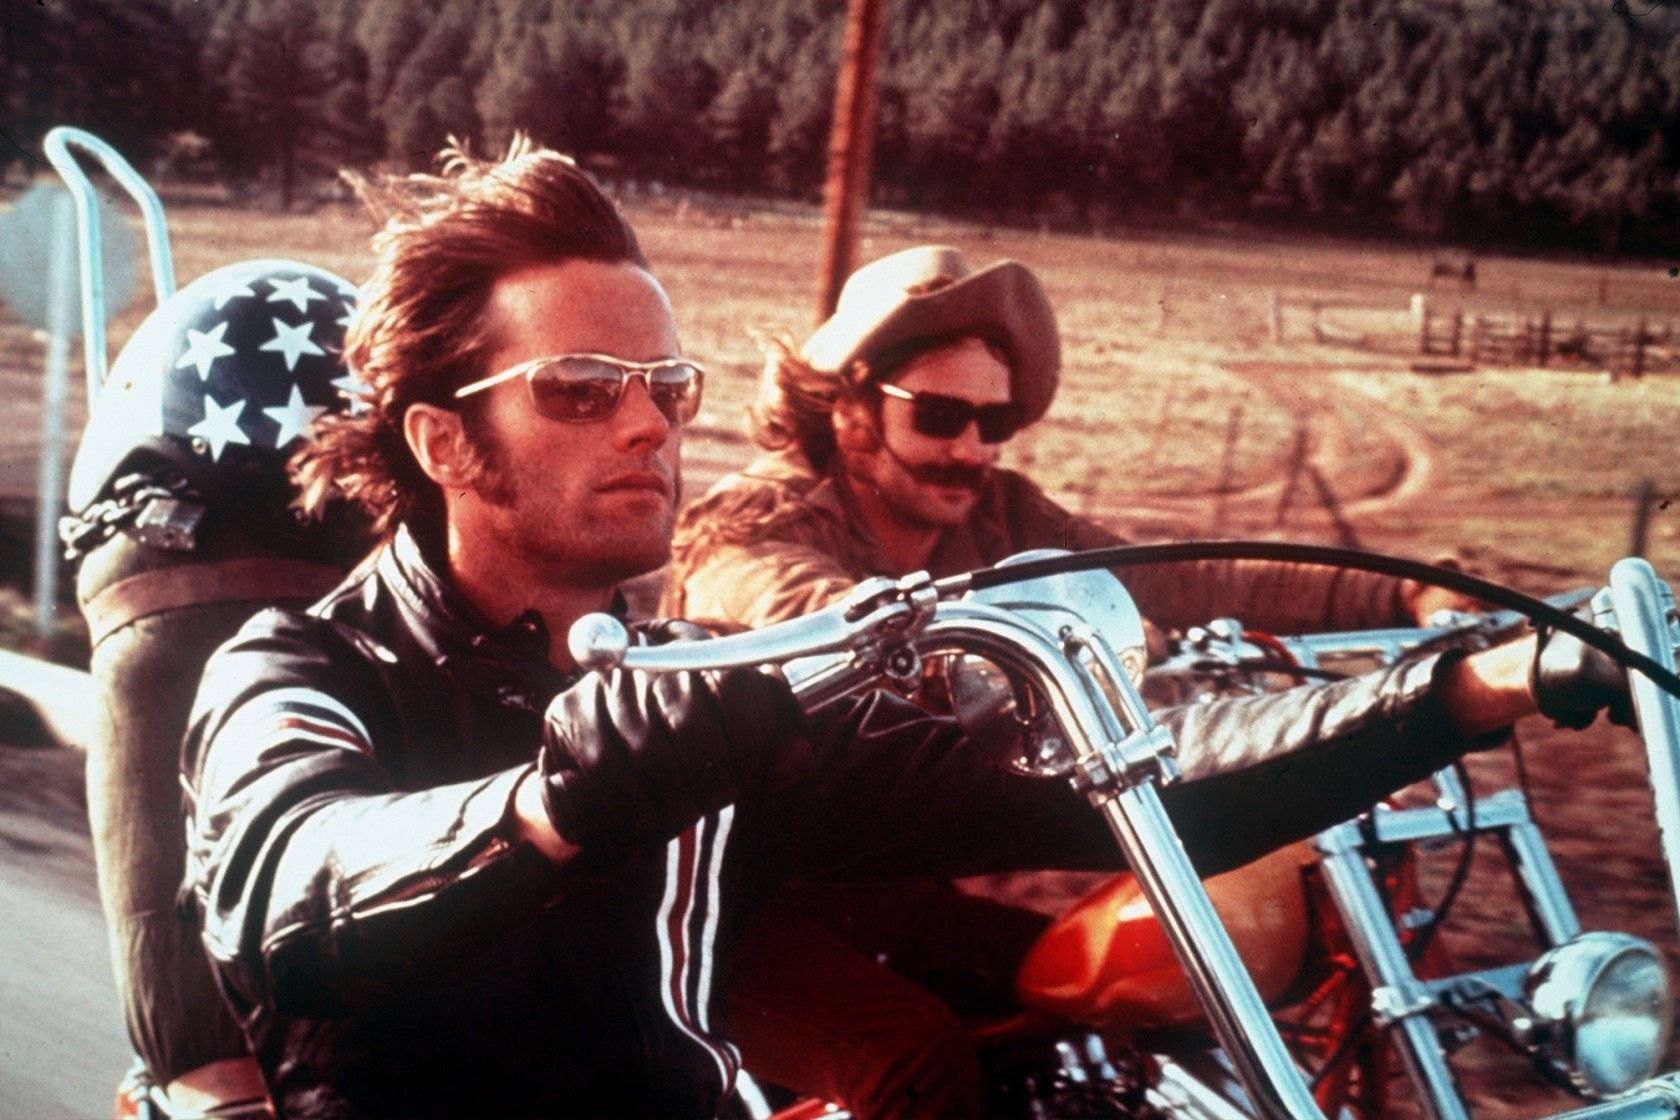 Peter Fonda in Easy Rider